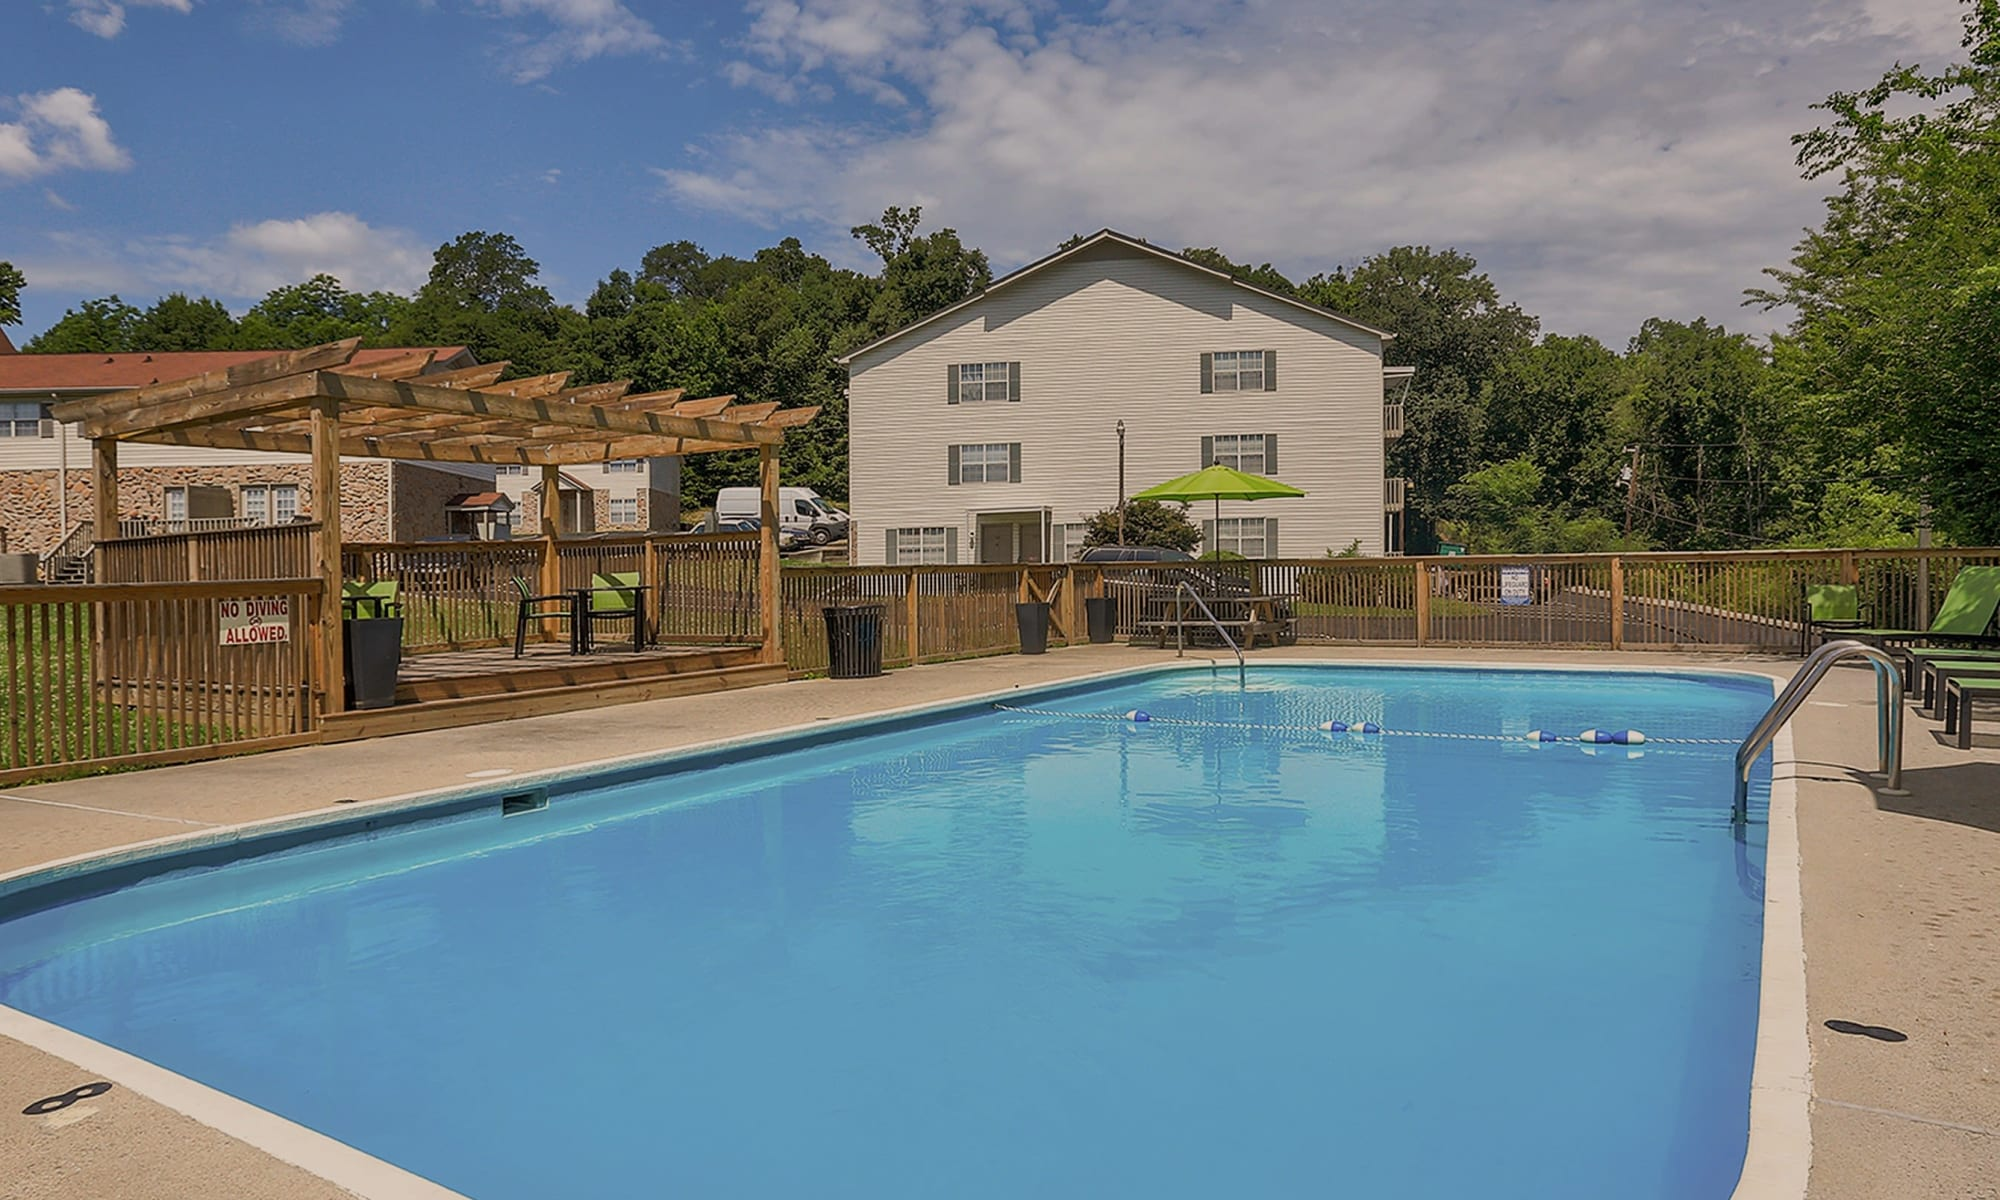 Apartments at Country Oaks in Hixson, Tennessee